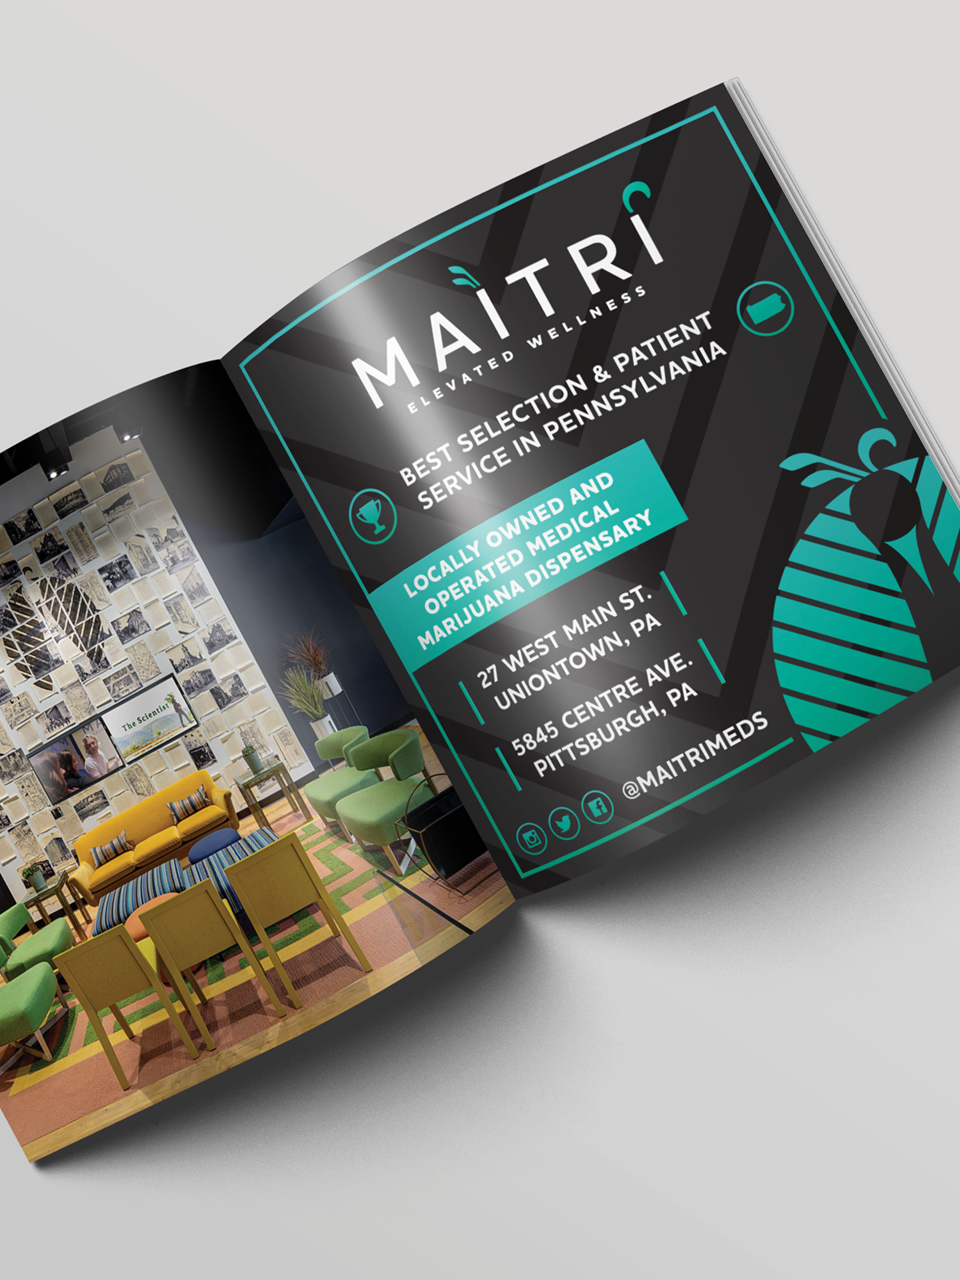 Maitri Brand Identity - High Road Design Studio